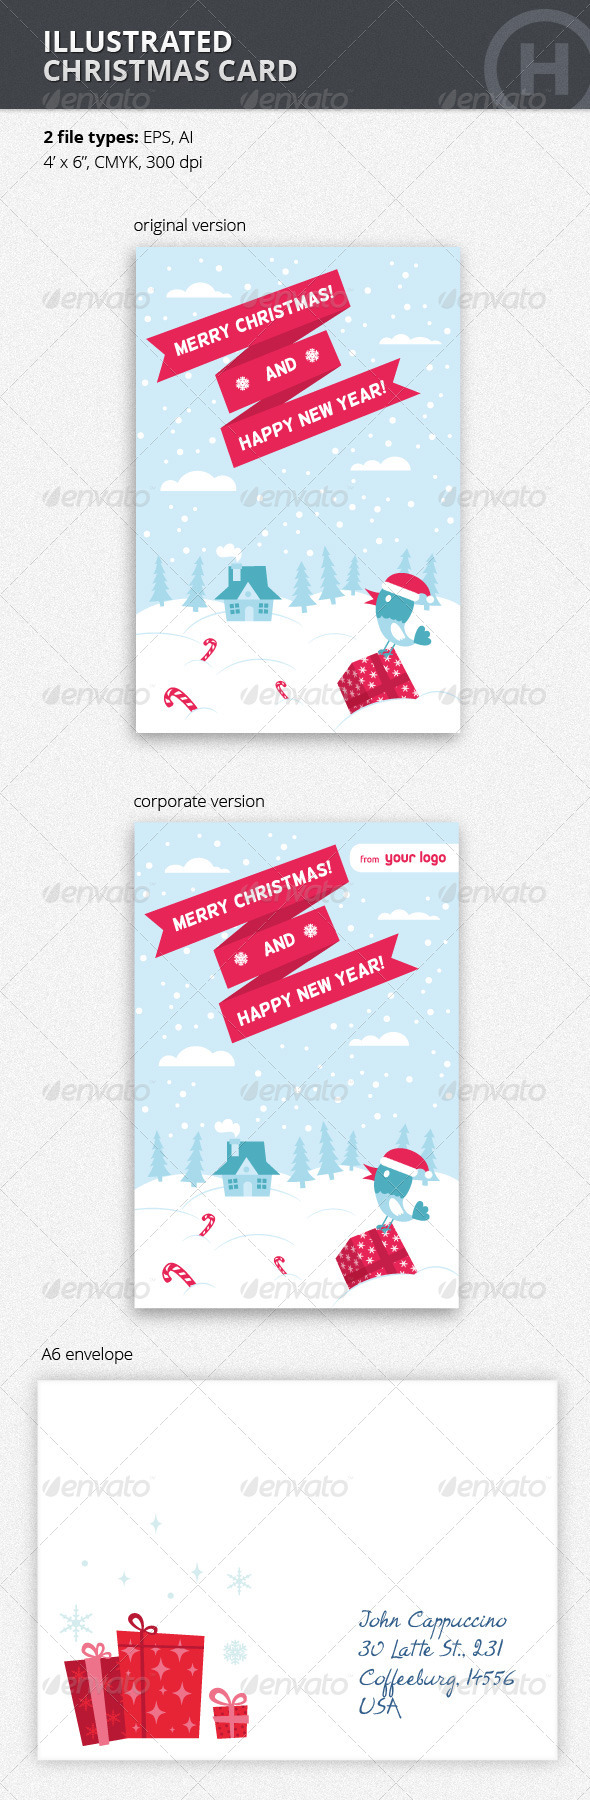 GraphicRiver Illustrated Christmas Card with Bird 3576637